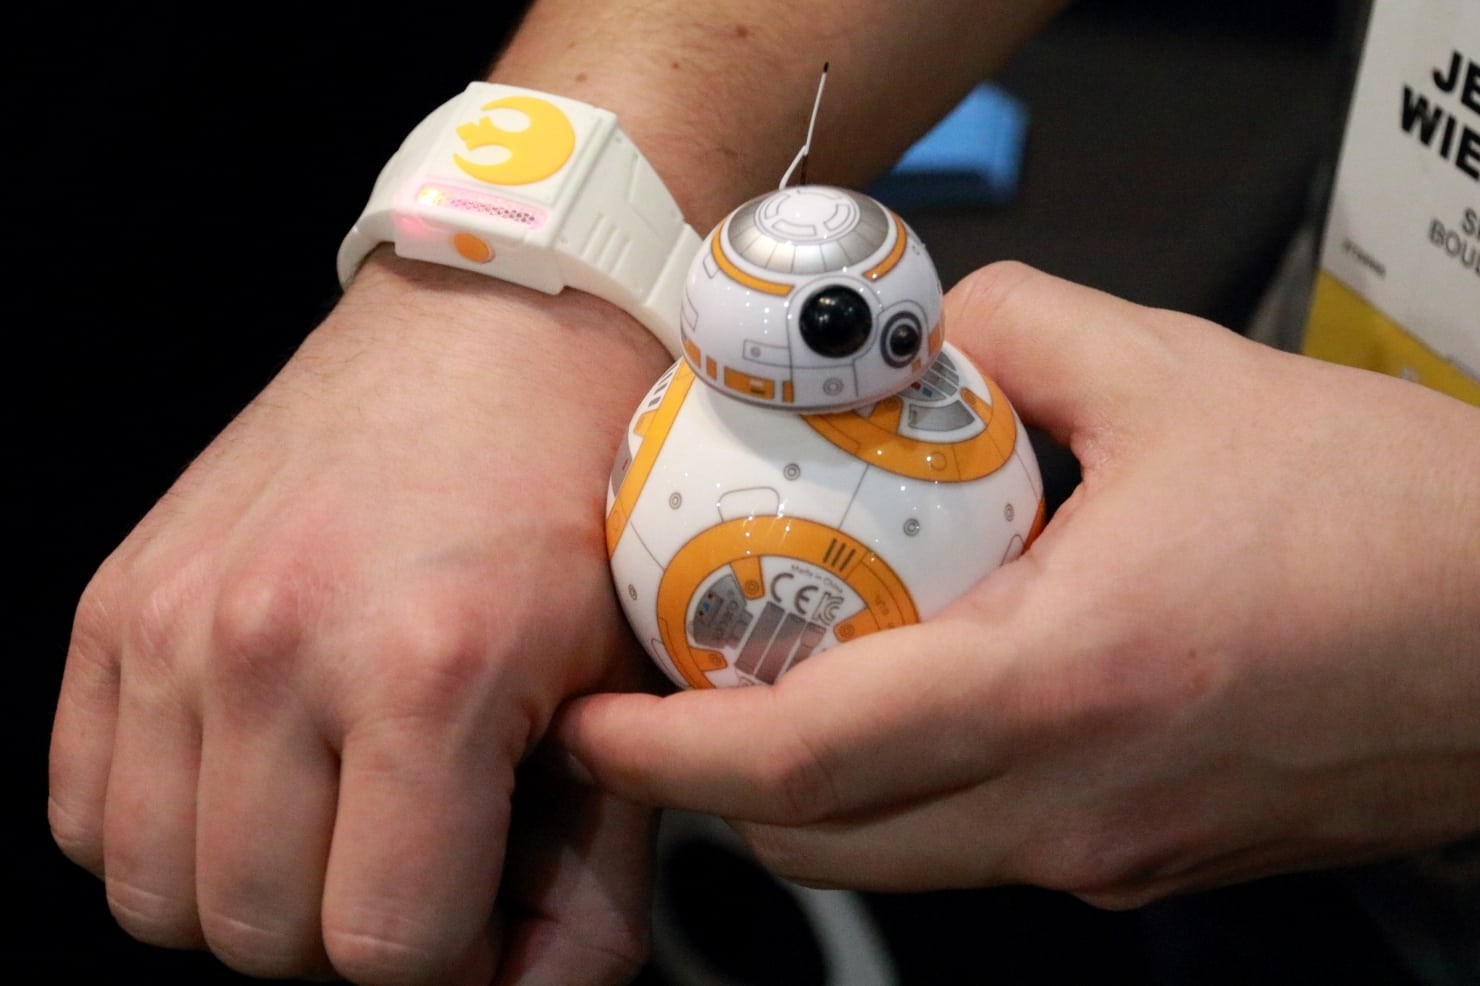 The Droid Everyone Is Looking For